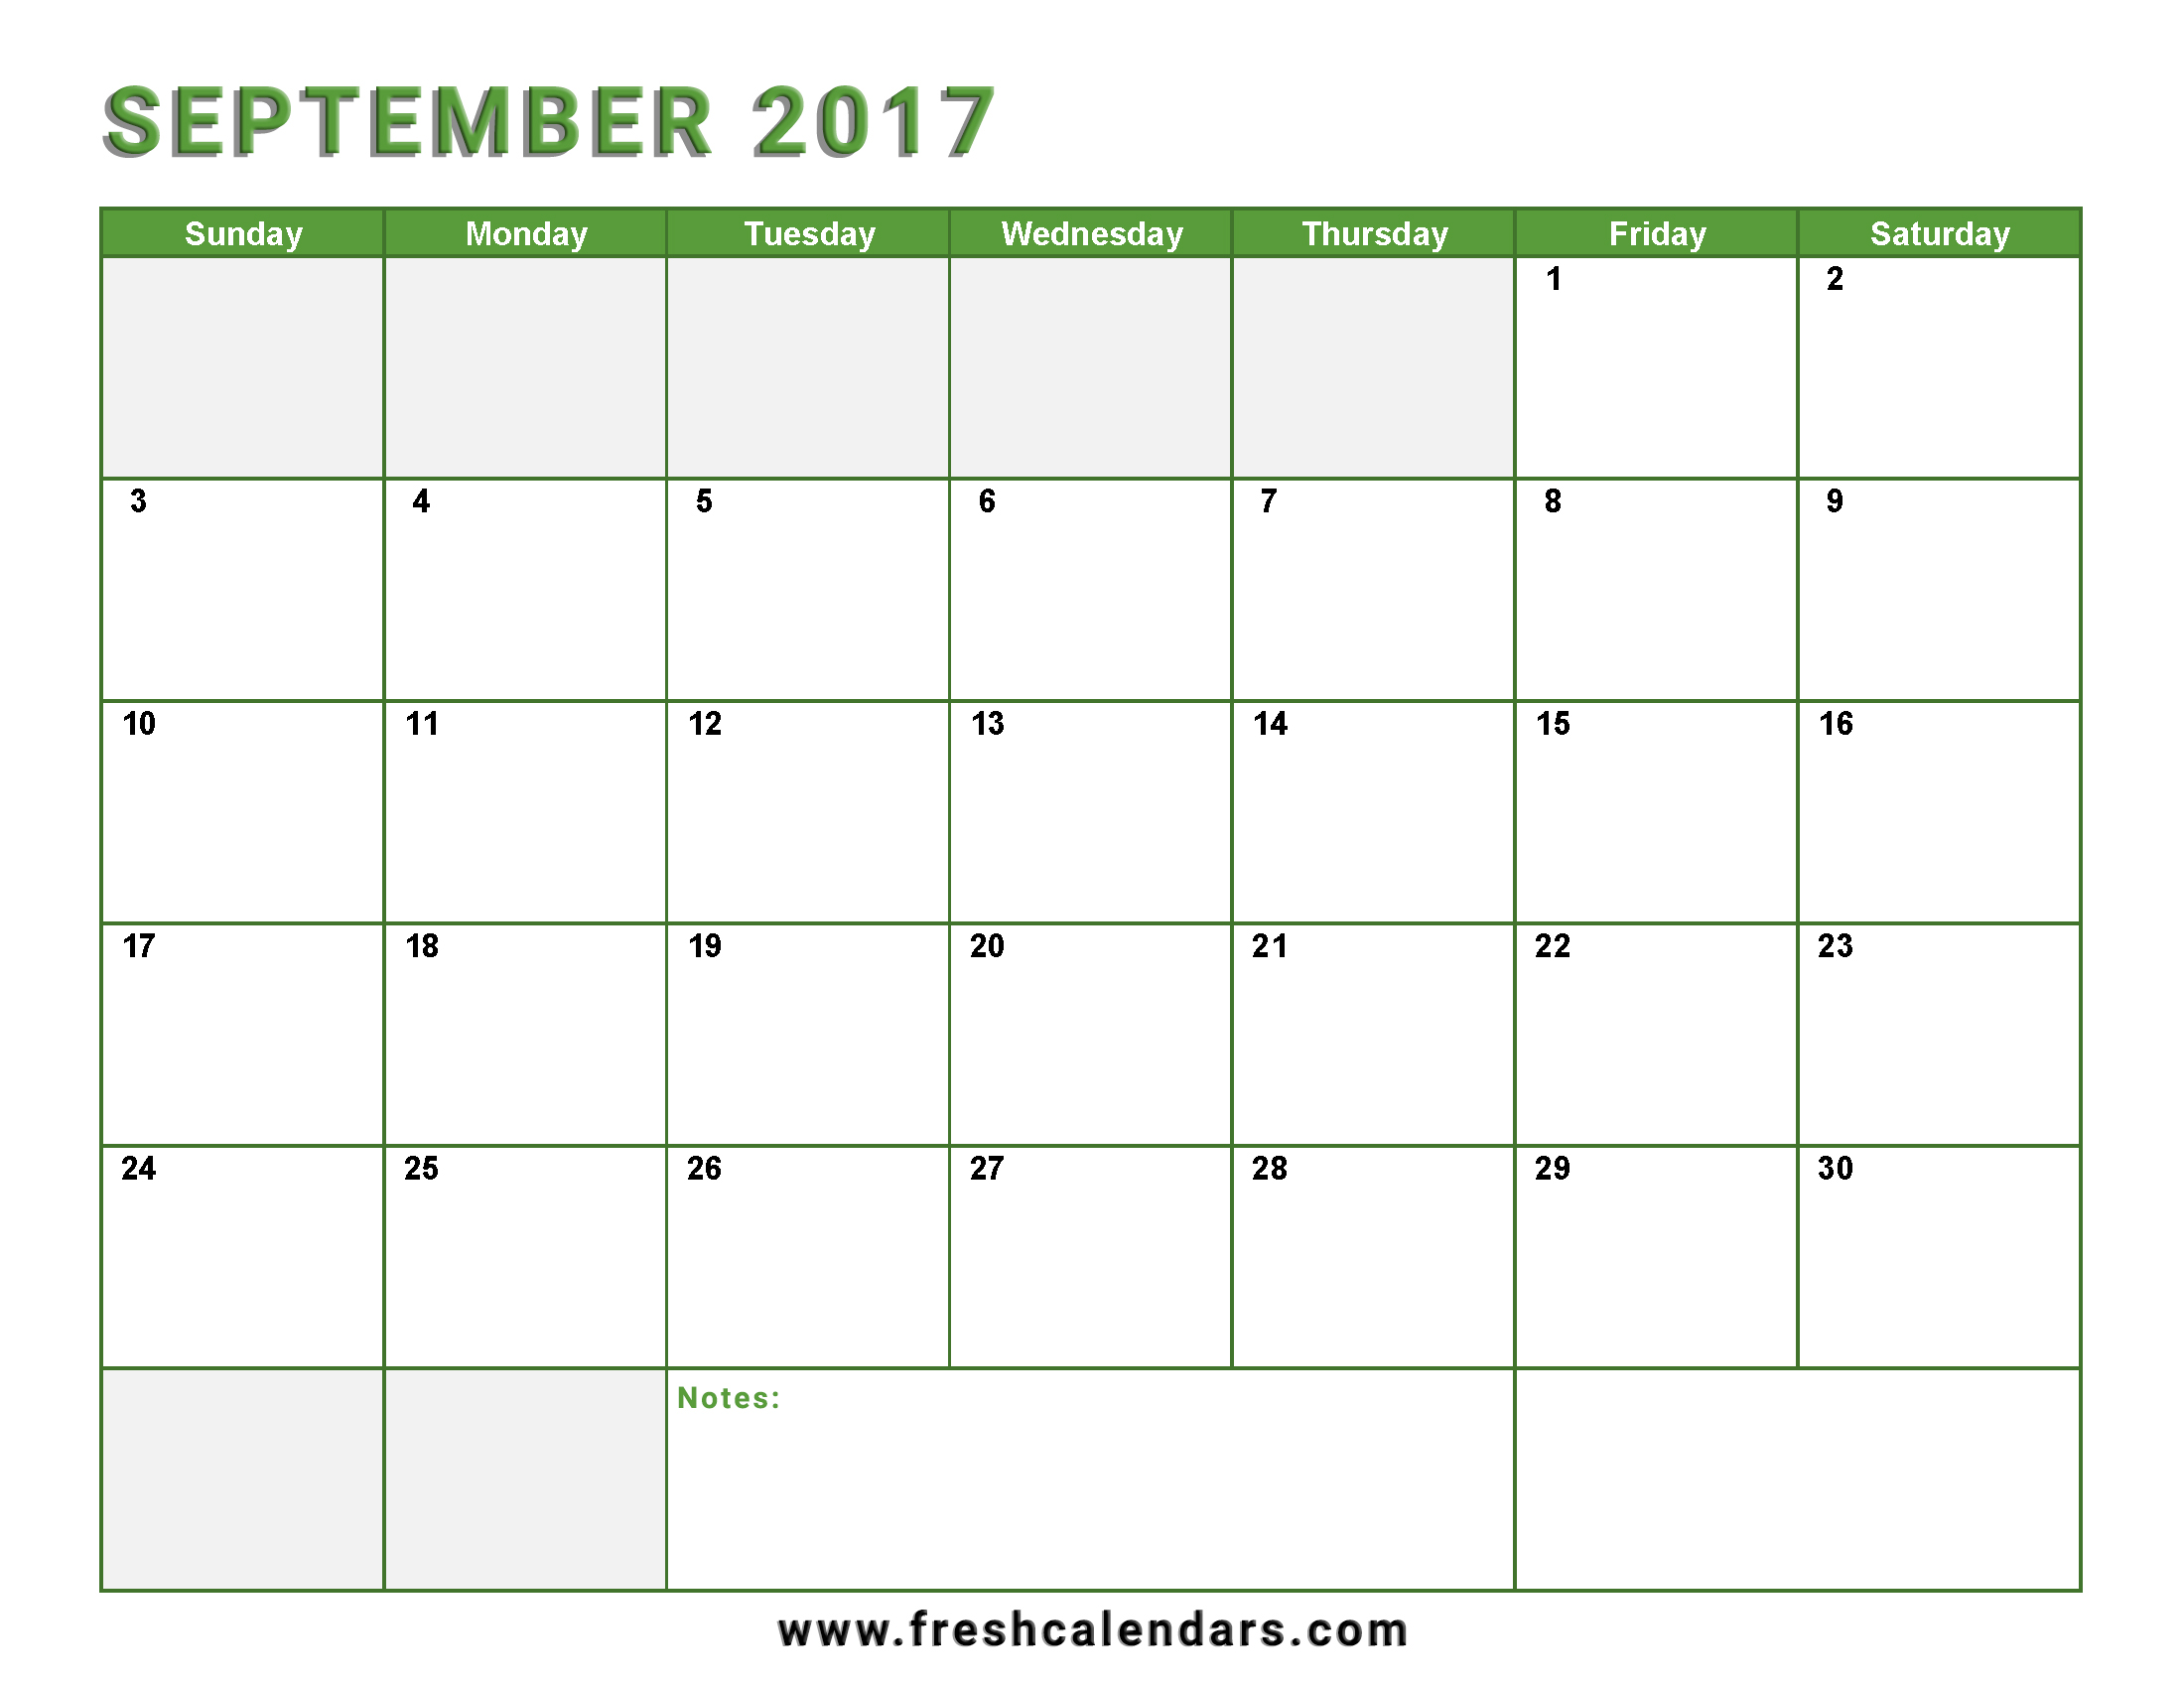 September 2017 Calendar Green Color Printable Free With Notes